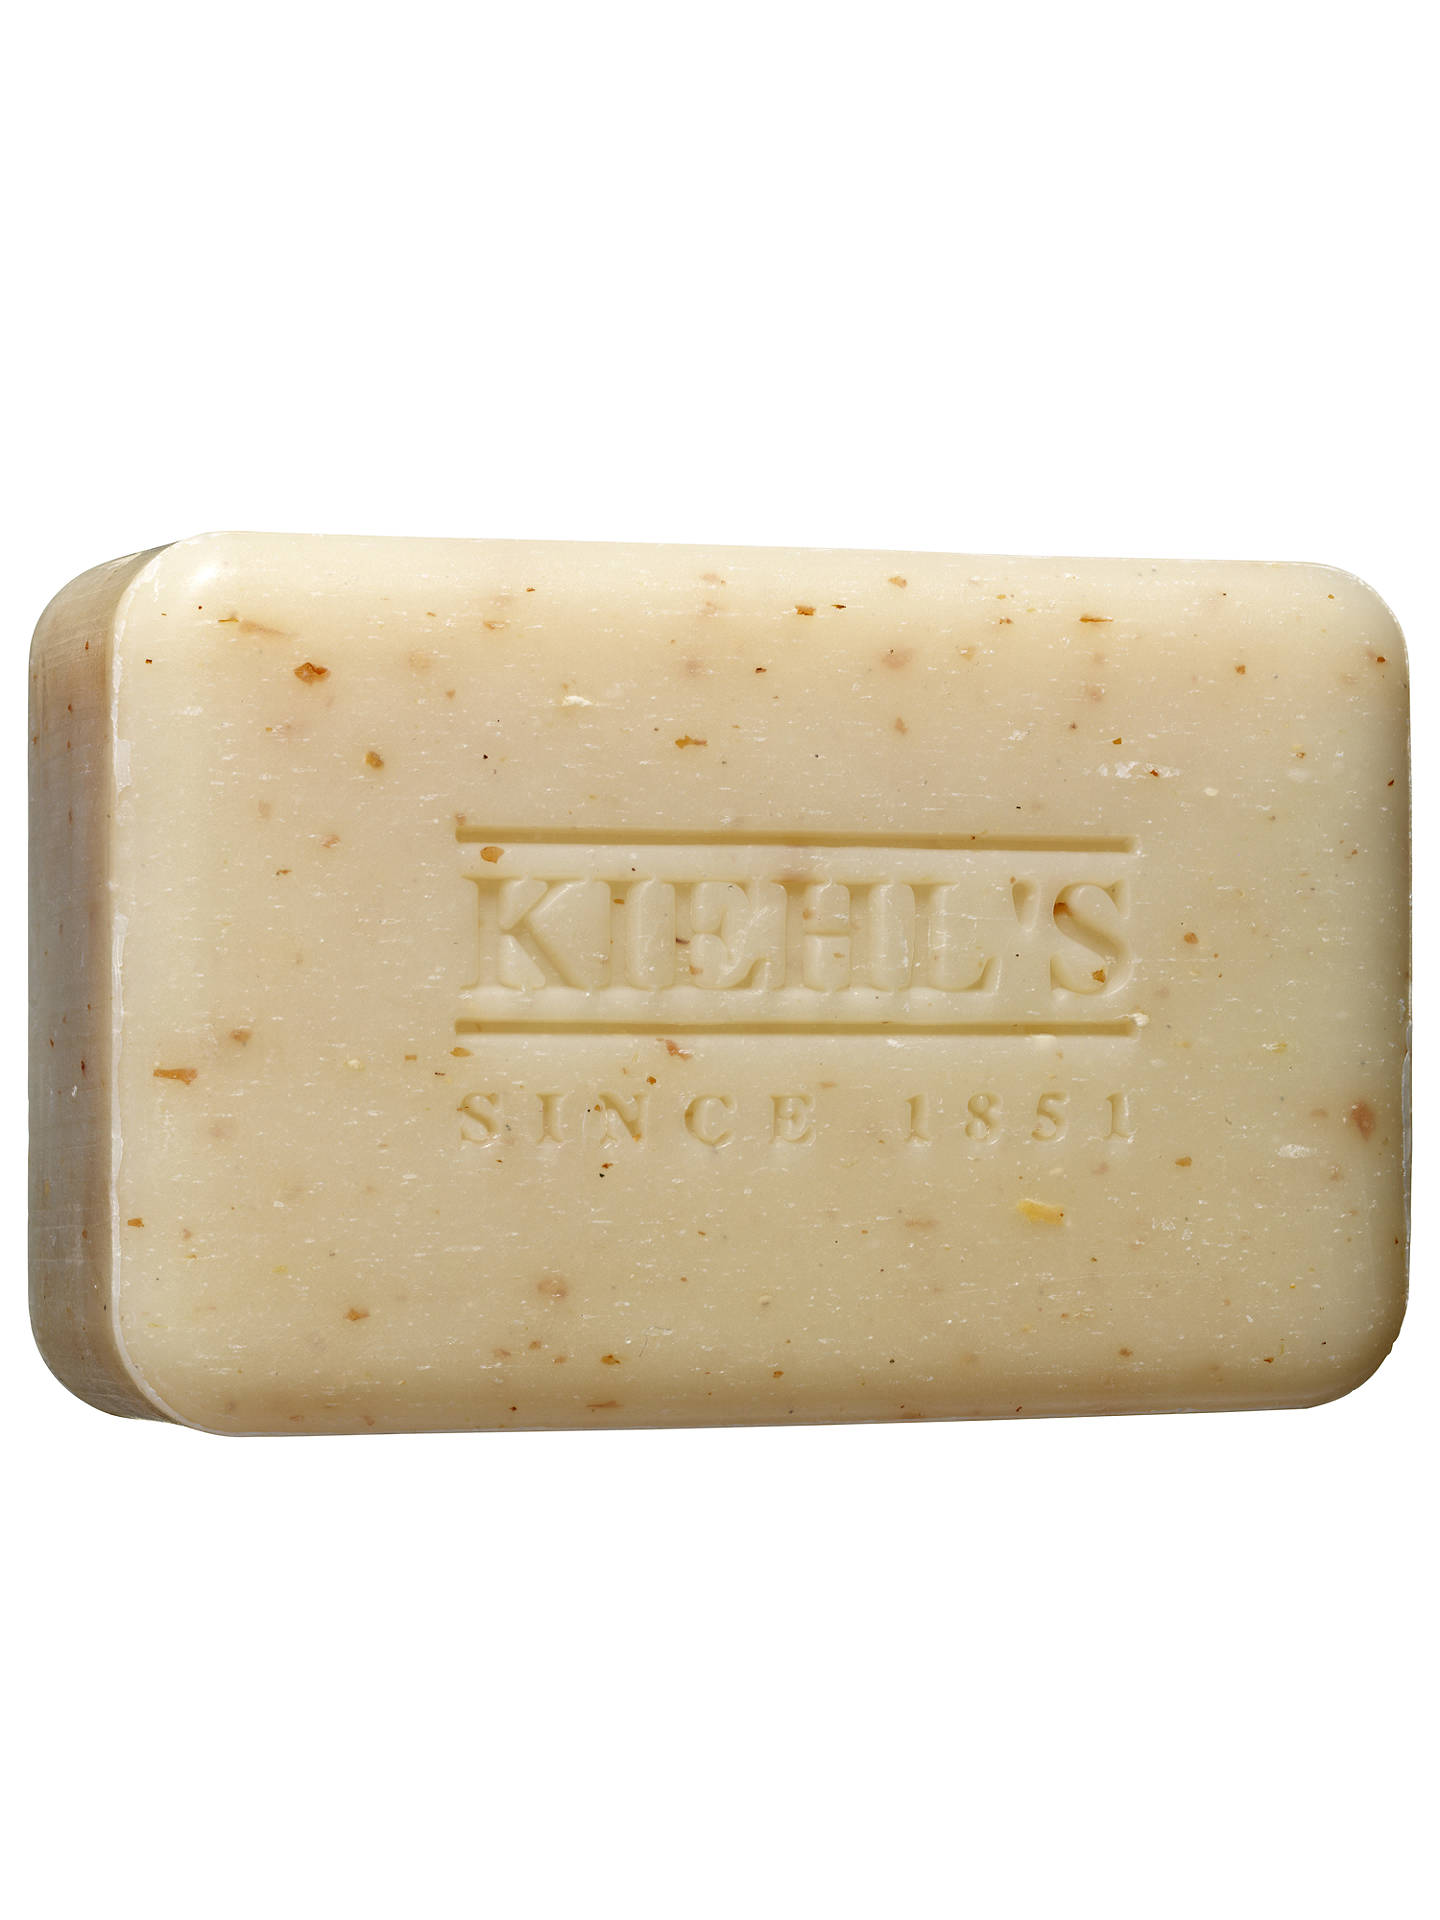 BuyKiehl's Ultimate Man' Body Scrub Soap, 200g Online at johnlewis.com